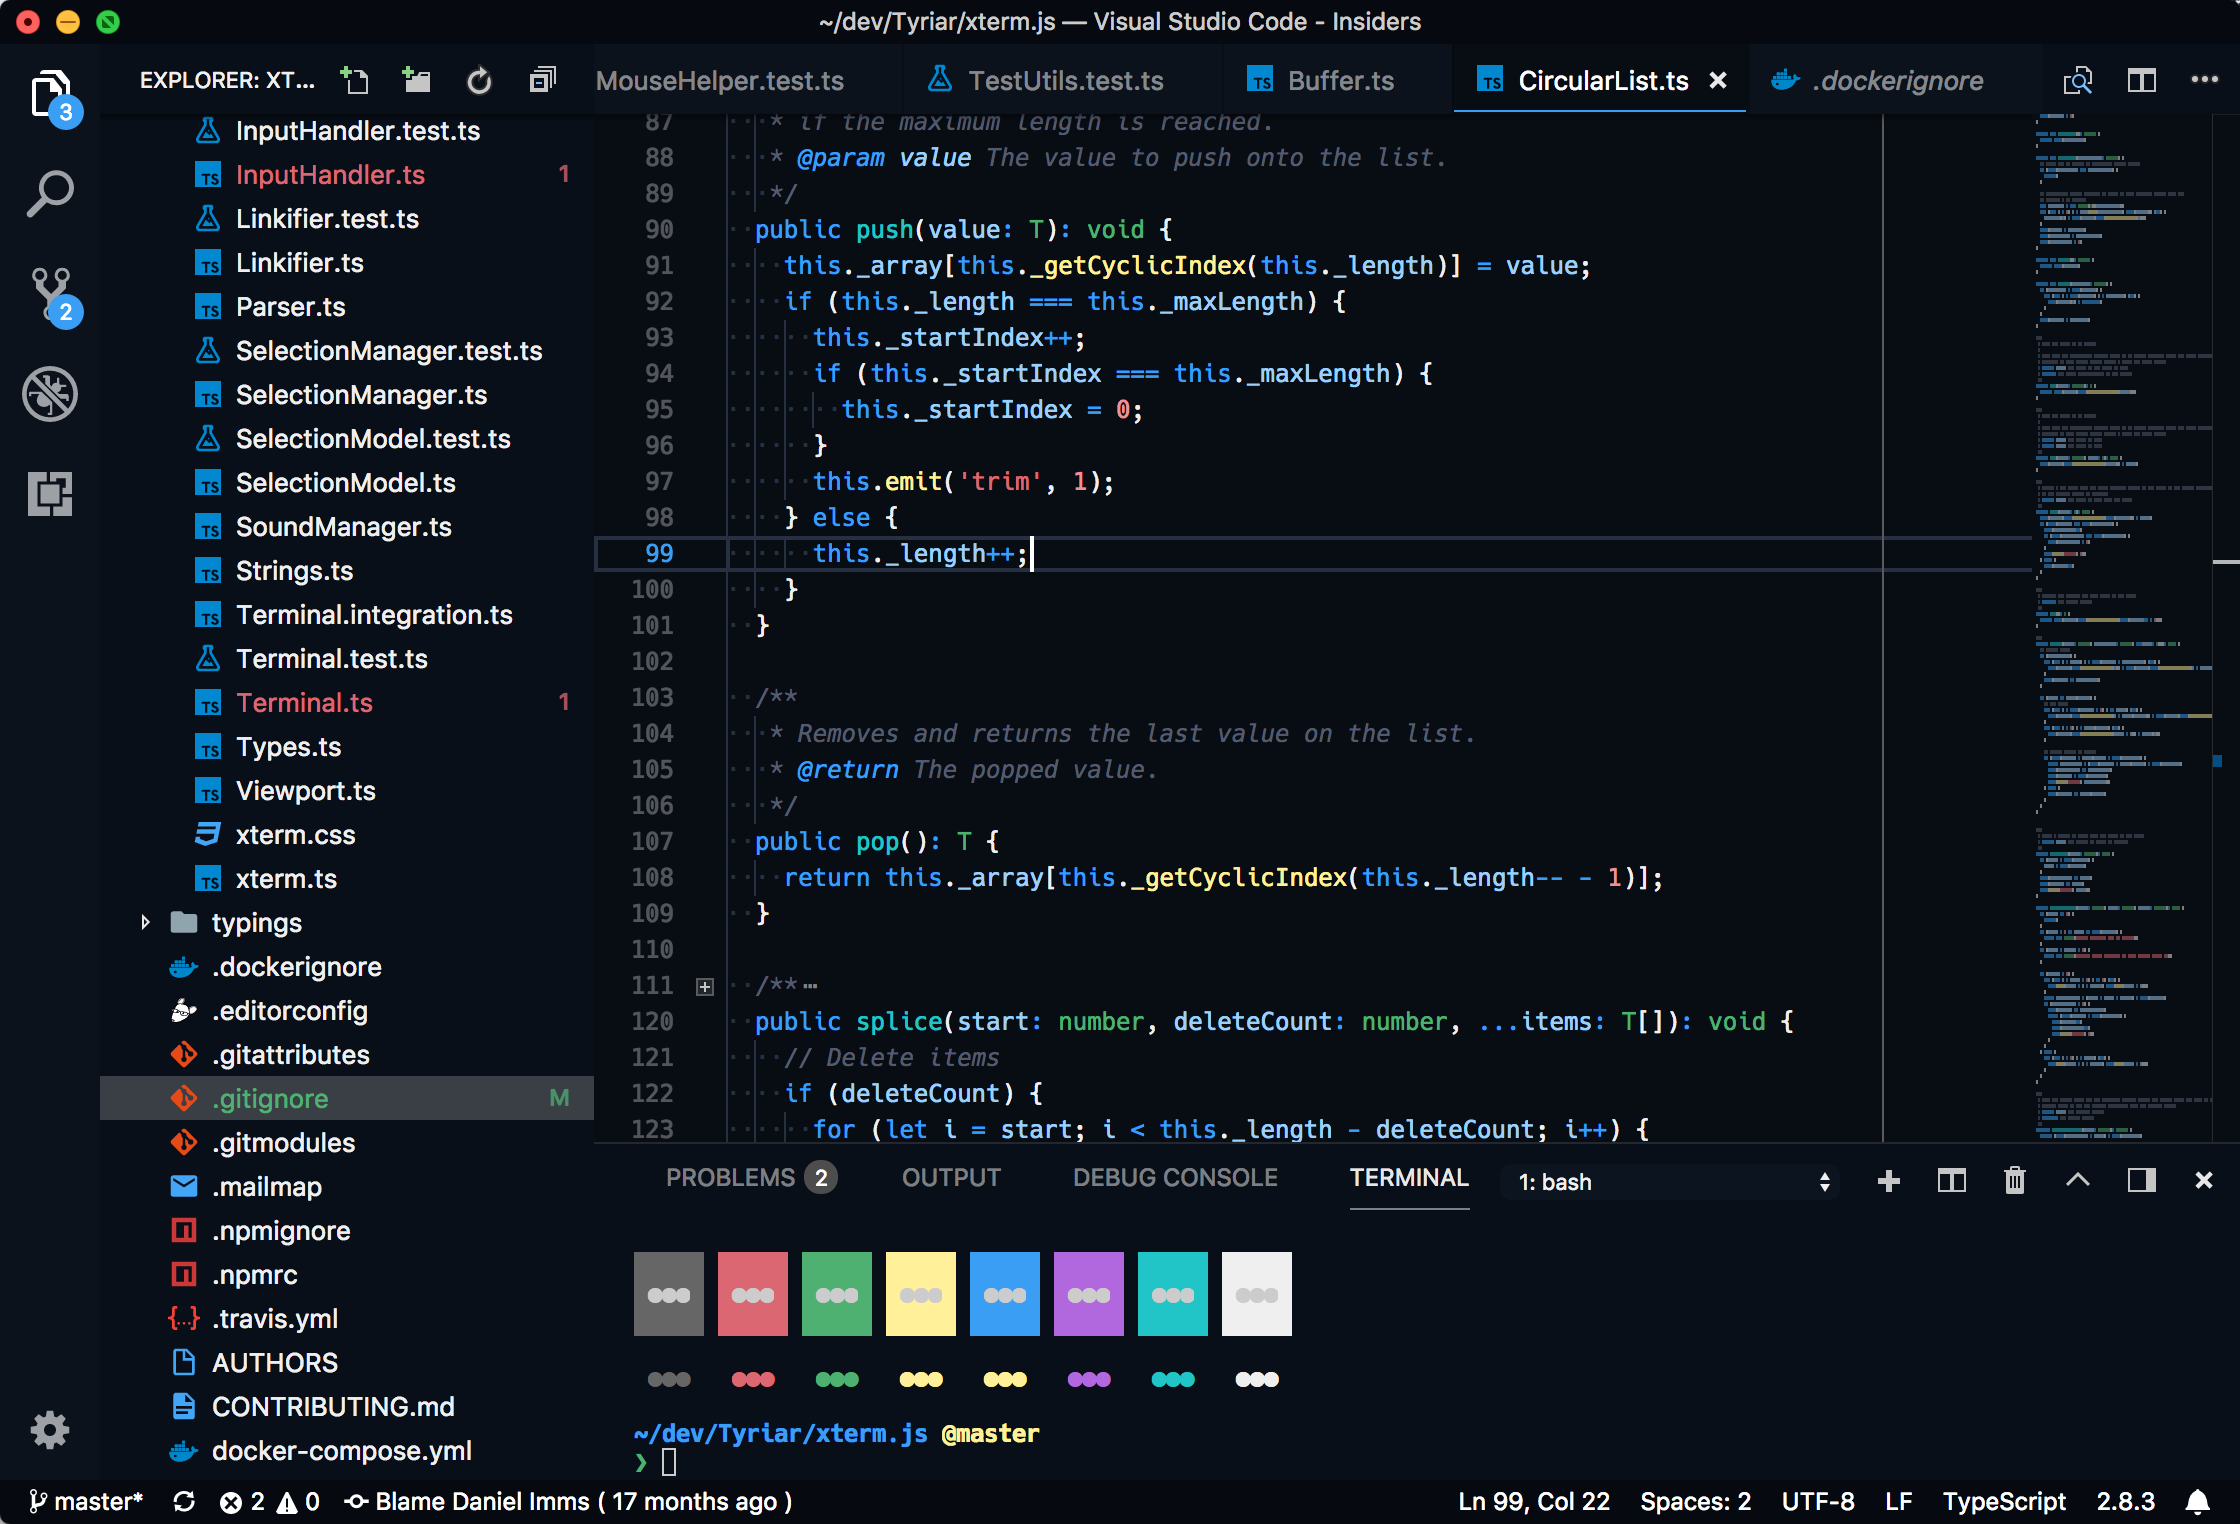 Visual Studio Code Sapphire (Dim) theme preview